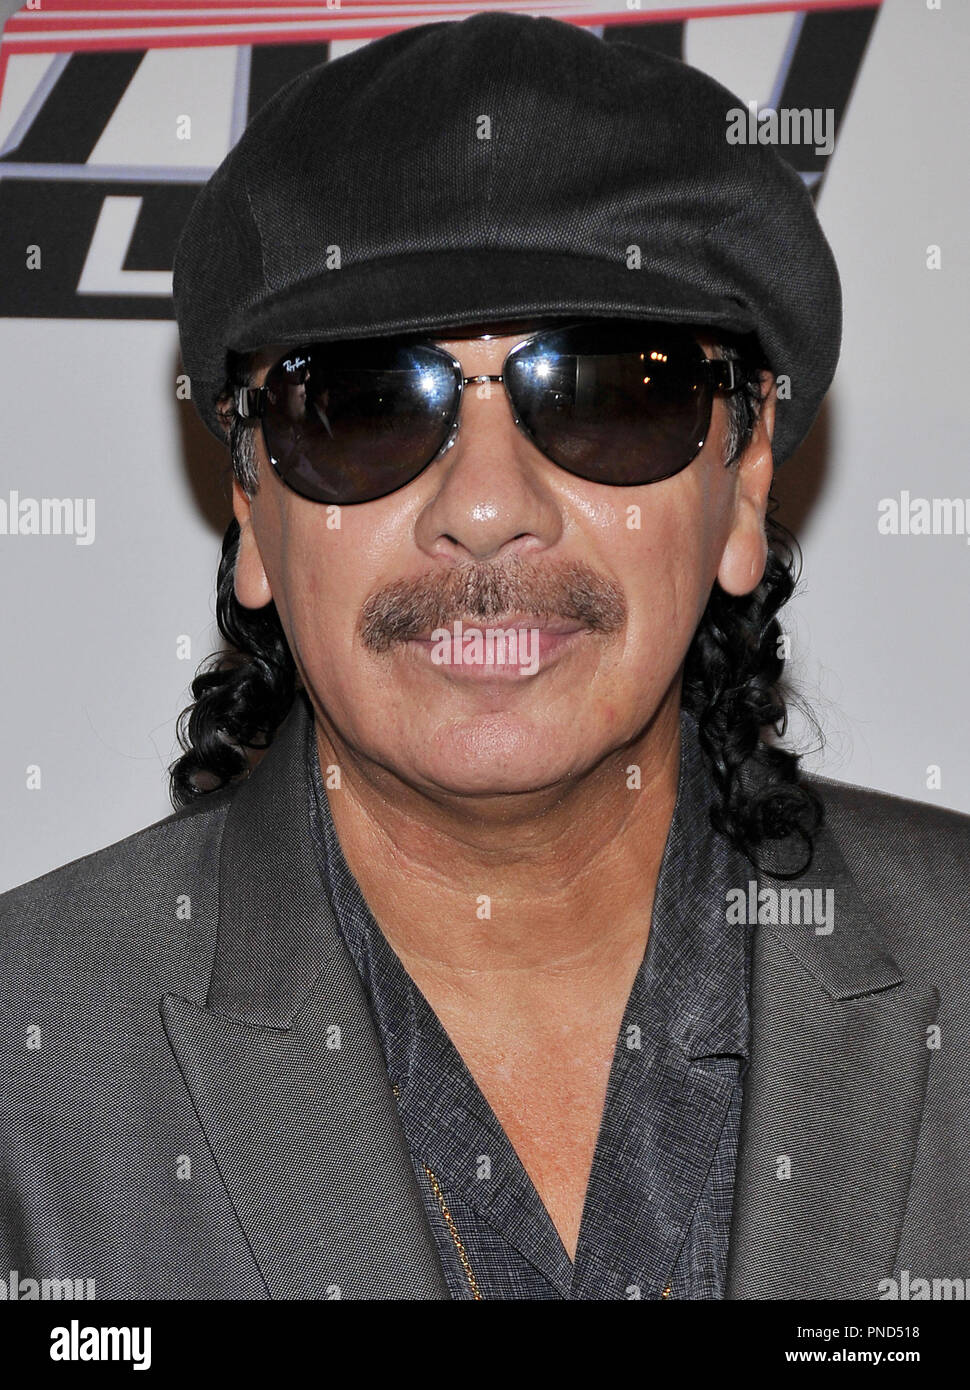 Carlos Santana at The Recording Academy and Clive Davis 2010 Pre-Grammy Gala held at the Beverly Hilton Hotel in Beverly Hills, CA. The event took place on Saturday, January 30, 2010. Photo by PRPP Pacific Rim Photo Press. /PictureLux File Reference # Carlos Santana 13010 1 (2)PLX   For Editorial Use Only -  All Rights Reserved Stock Photo